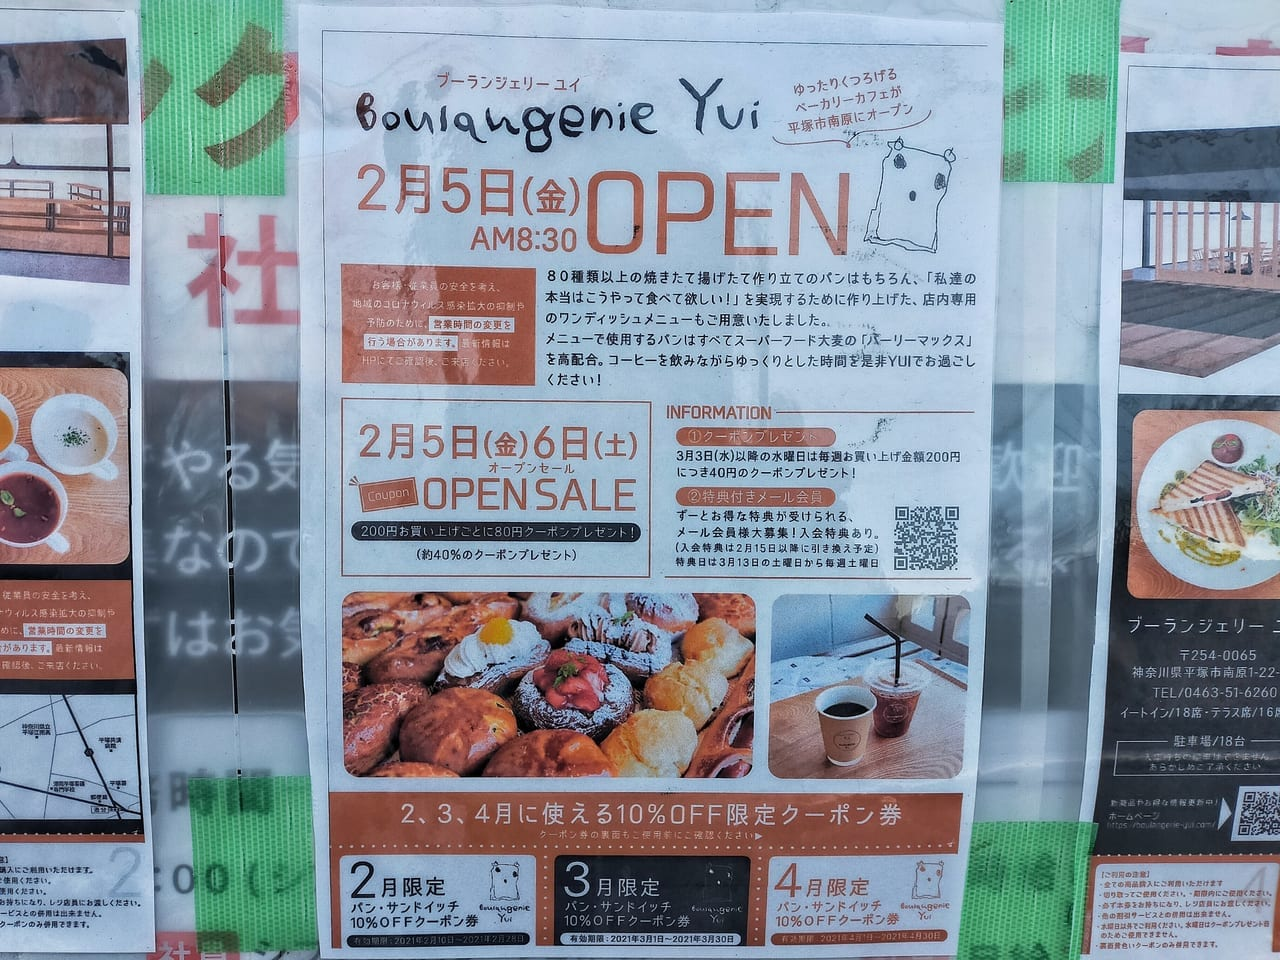 藤沢で人気のパン屋さん、「Boulangerie Yui(ブーランジェリー ユイ)」の4号店が2021年2月5日(金)に南原にオープンします!